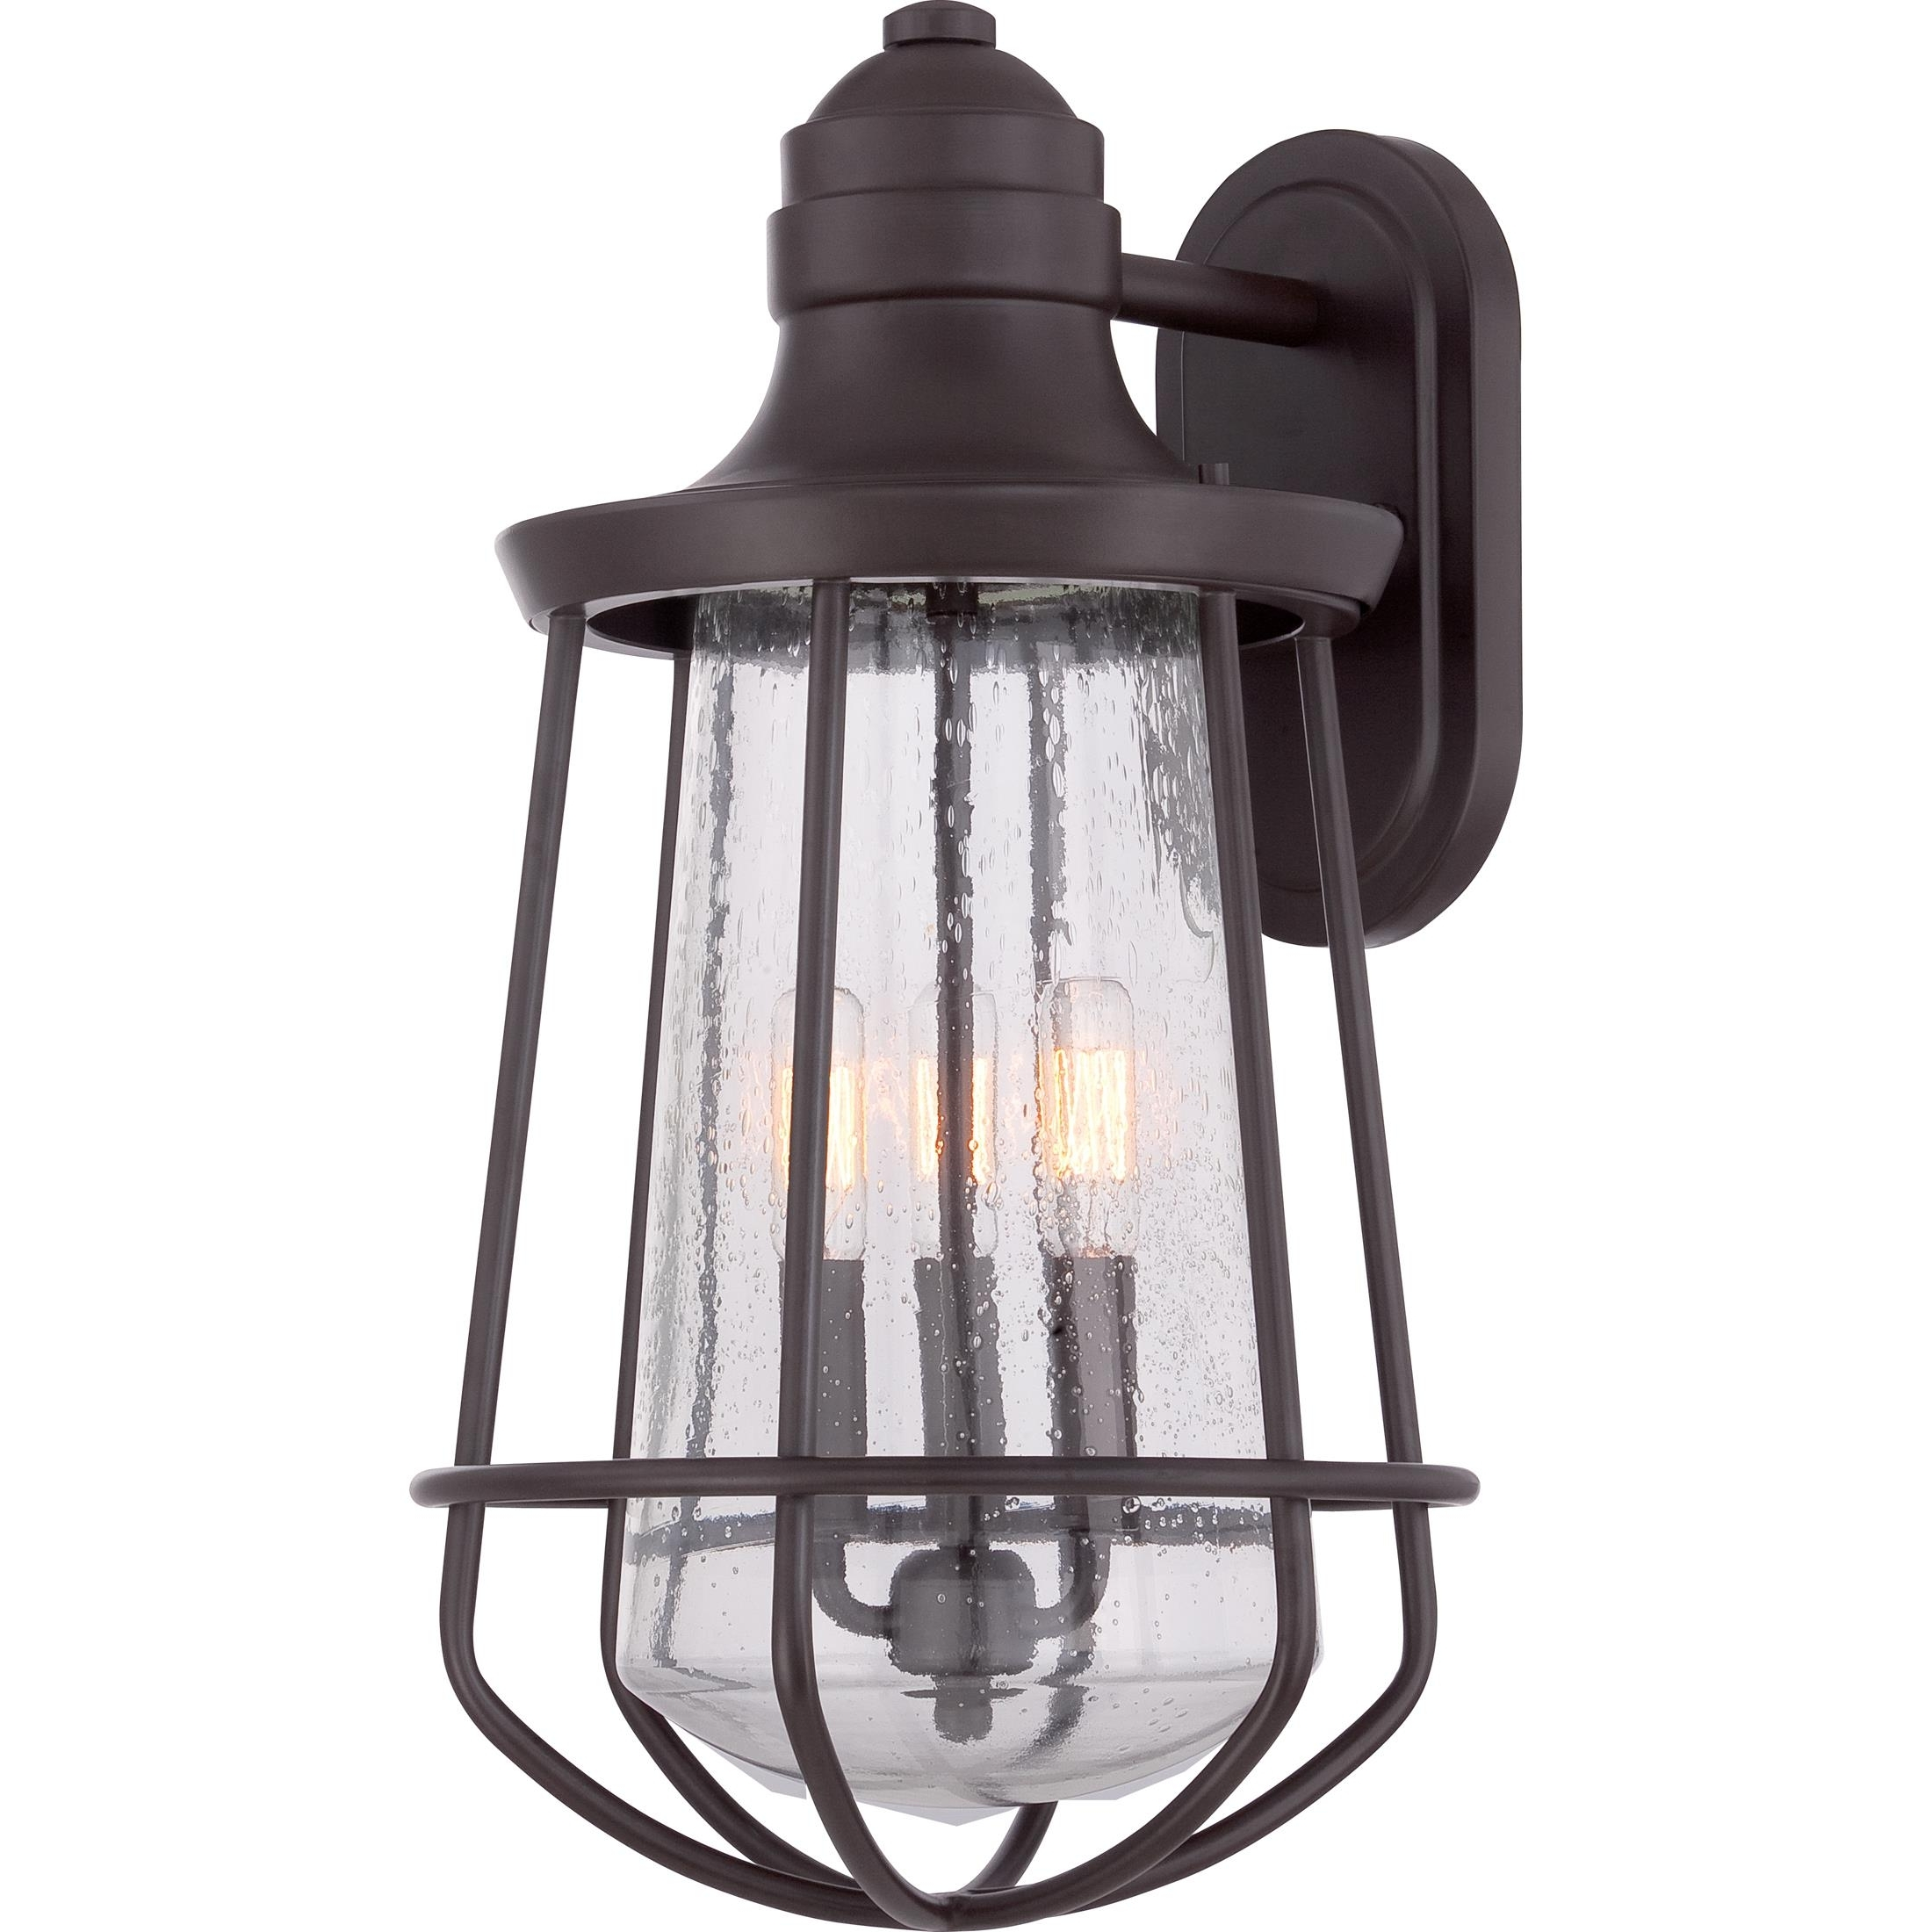 Widely Used Quoizel Lighting Mre8410Wt Shipped Direct For Quoizel Outdoor Lanterns (View 20 of 20)